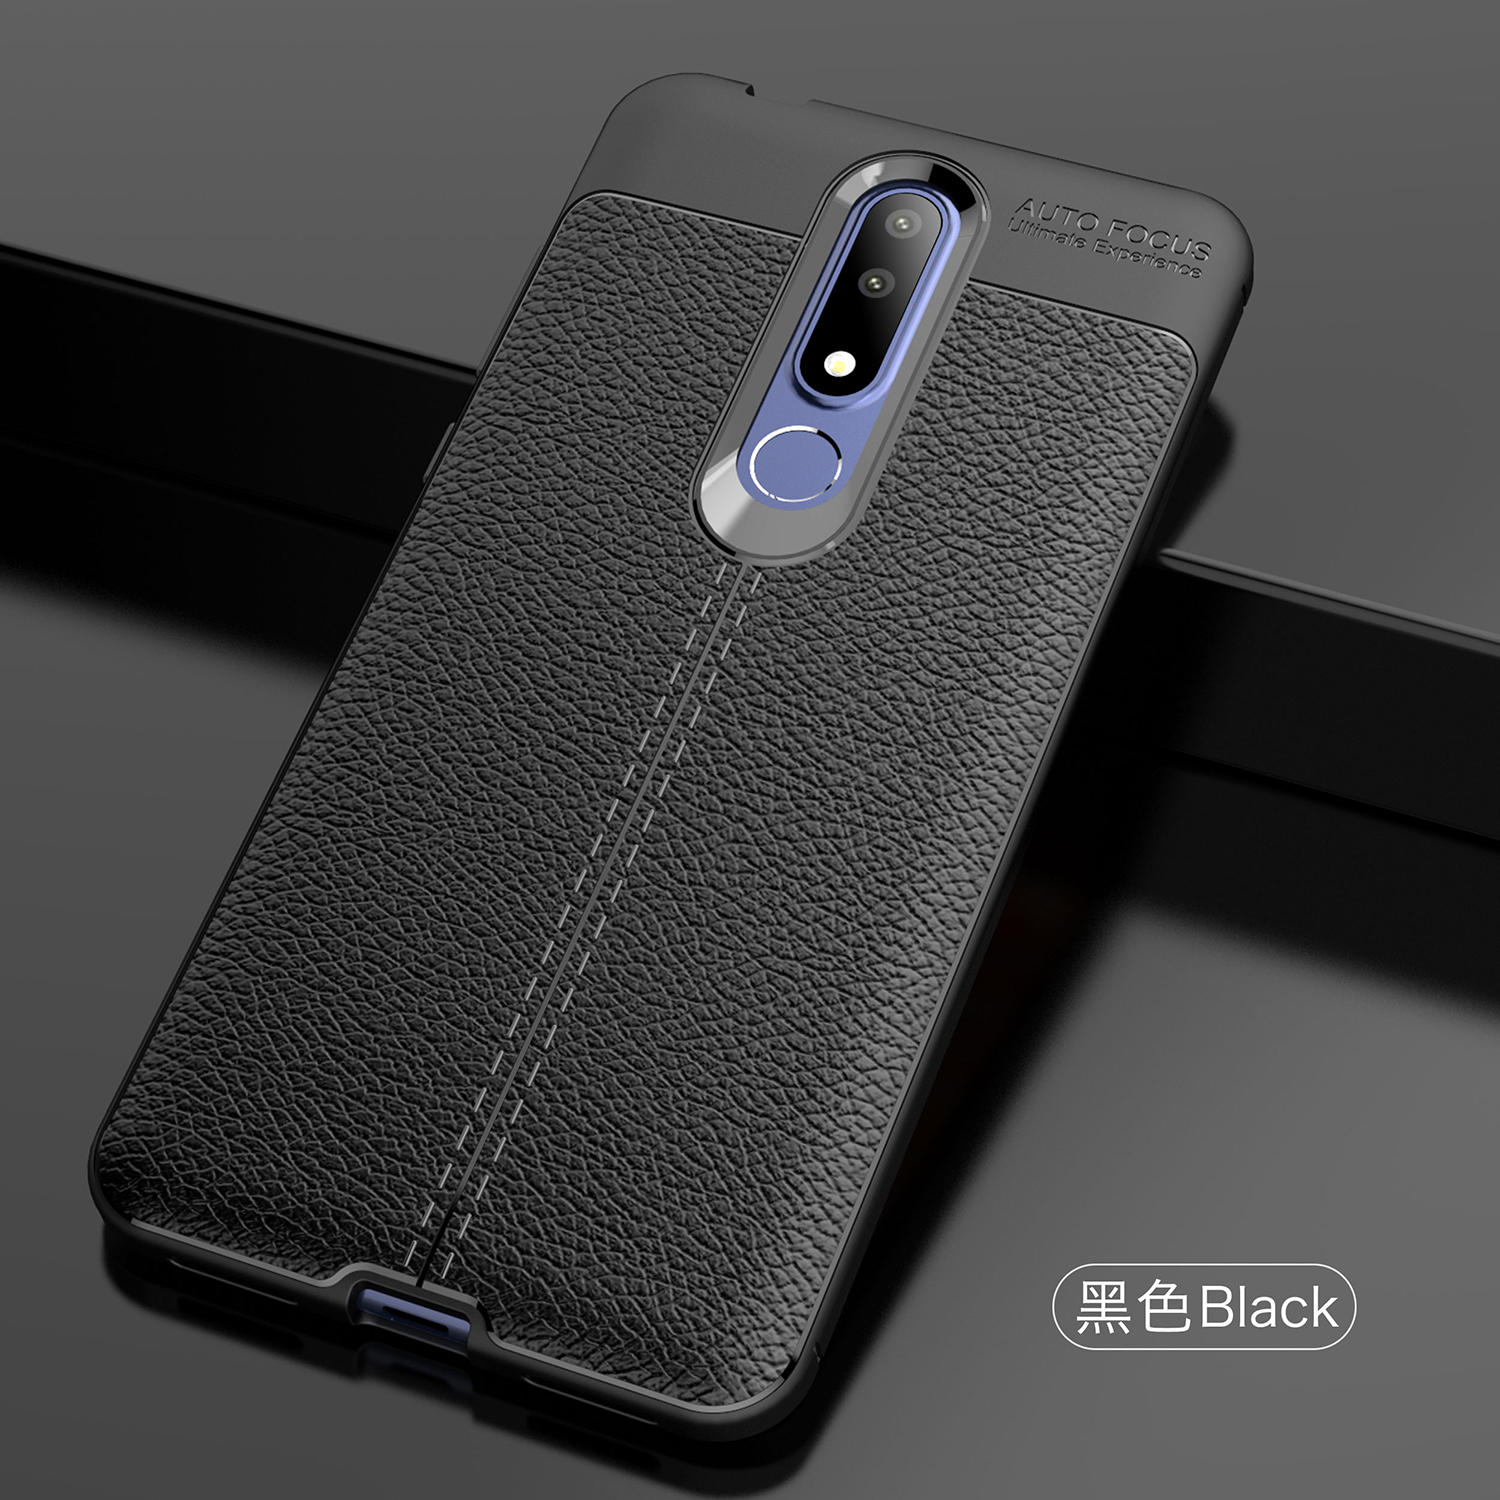 Wolfsay Soft TPU Case For Nokia 3.1 Plus Case Leather Texture Silicone Phone Cover For Nokia 3.1 Plus TA-1118 TA-1117 Coque